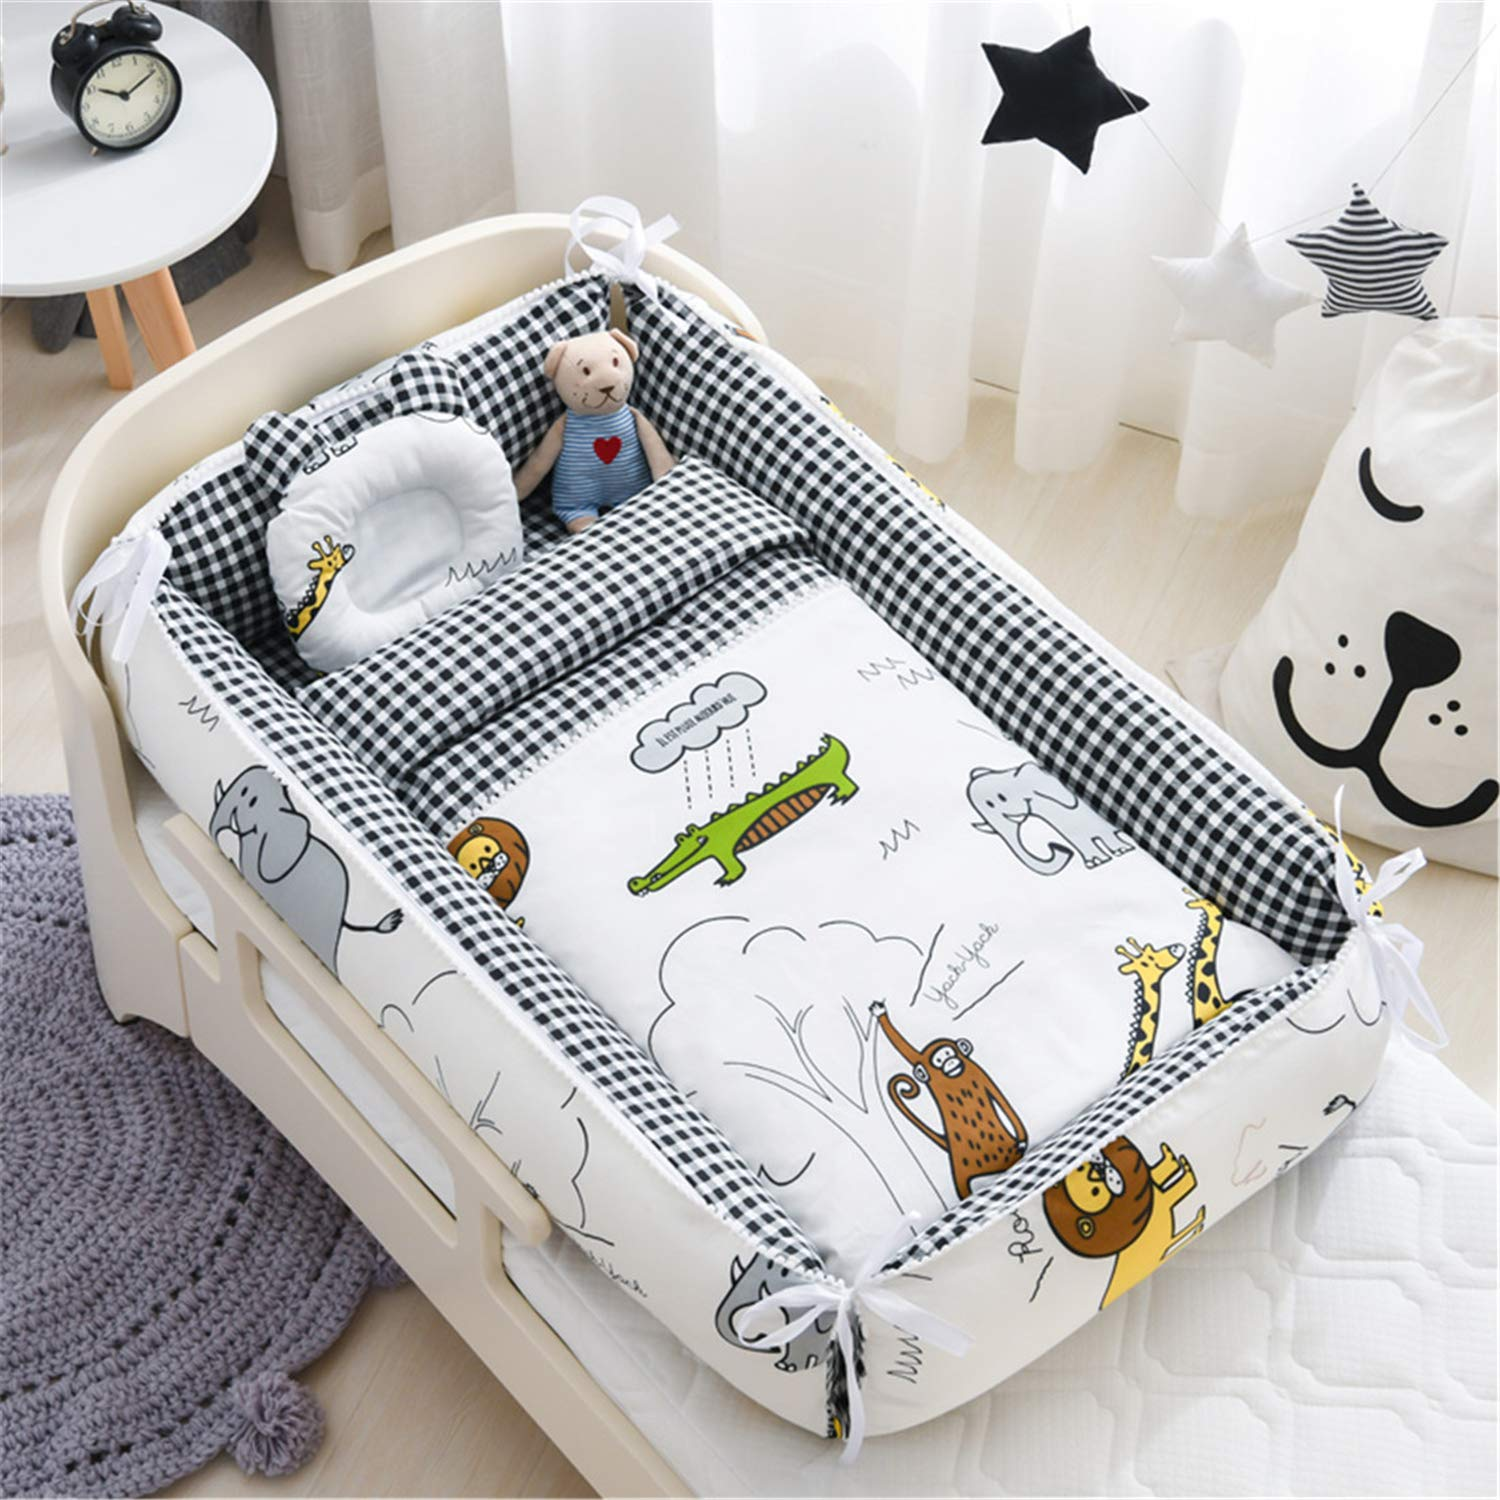 Abreeze Baby Bassinet for Bed, Lion Baby Lounger Comforter,Baby Nest,Cotton Crib Breathable Baby Nest Co-Sleeping Baby Bed,100% Cotton Portable Crib Pillow for Bedroom/Travel/Camping